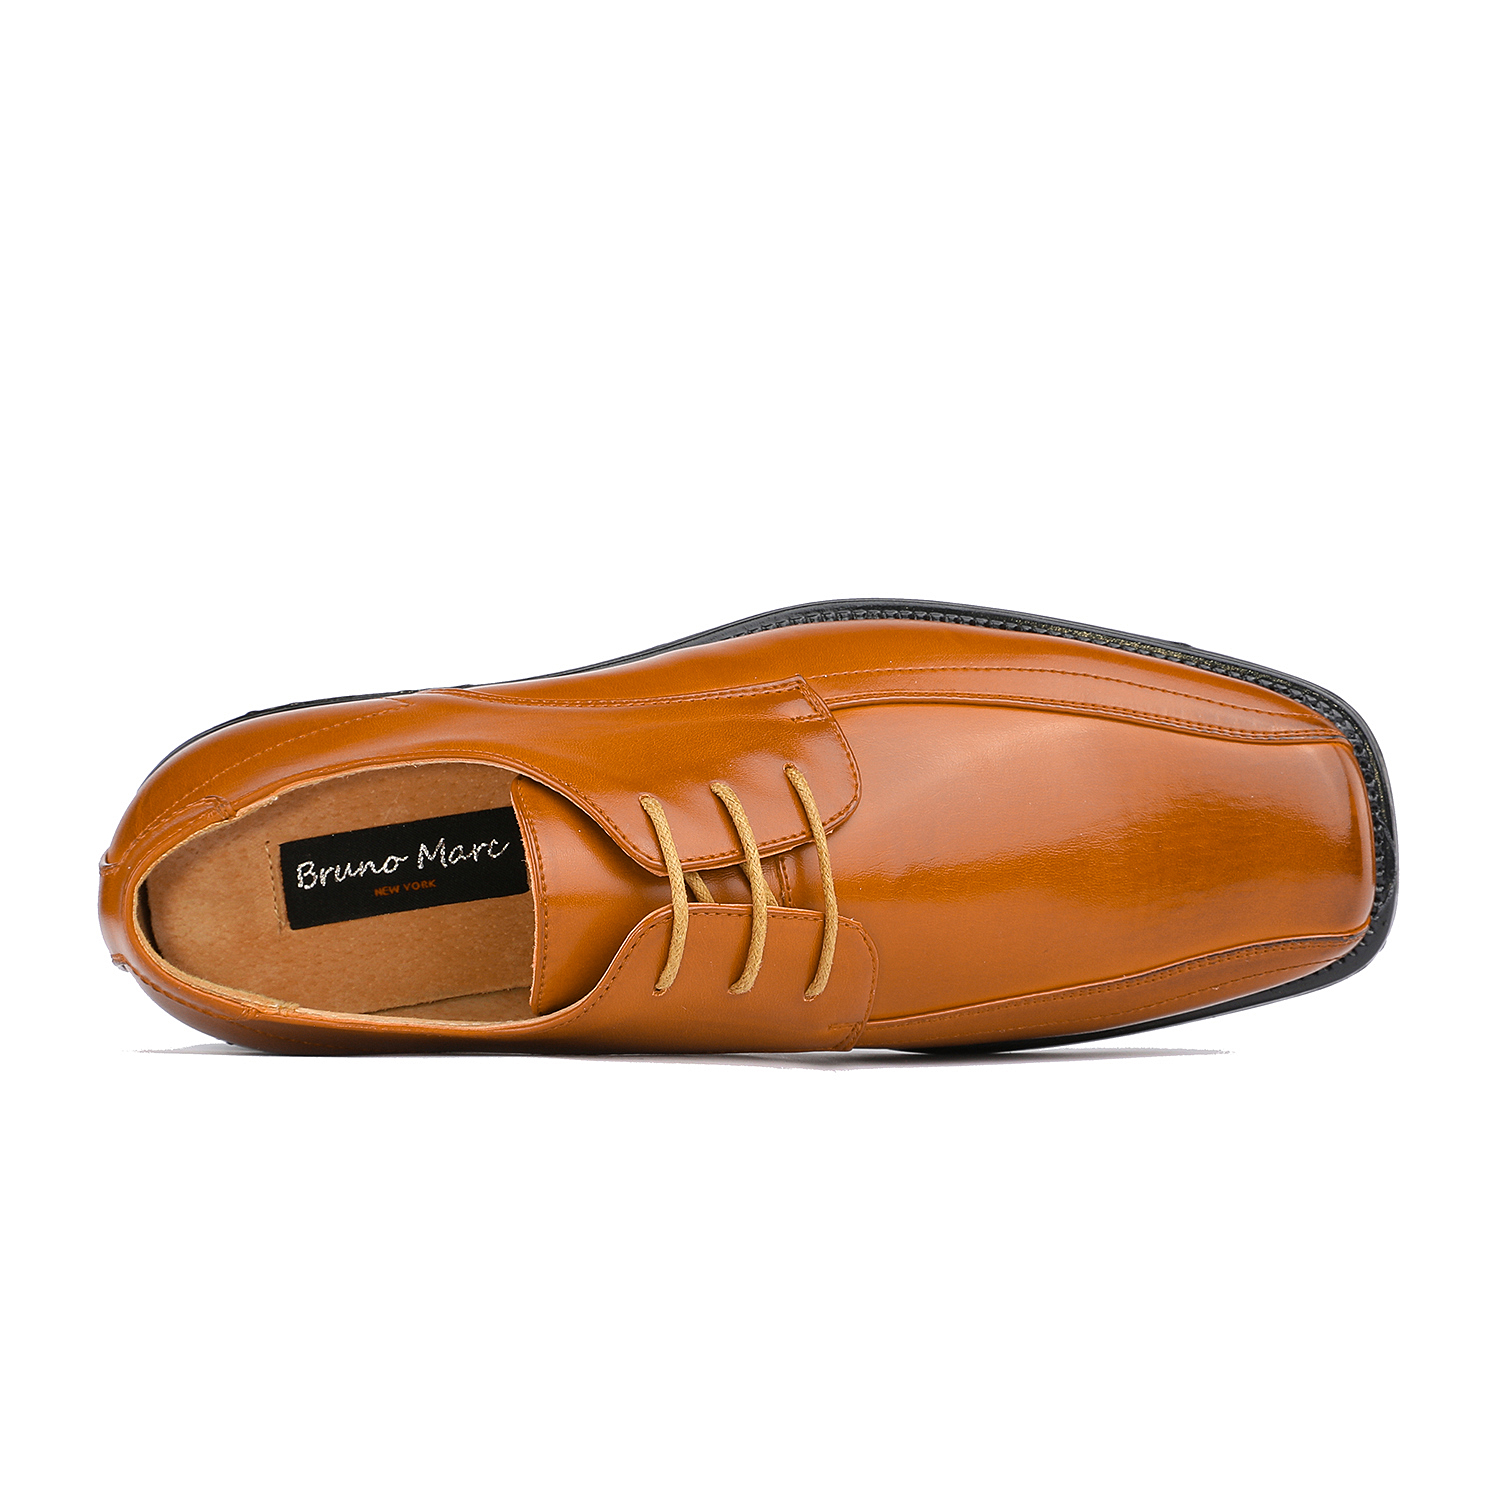 BRUNO-MARC-Men-STATE-Formal-Square-Toe-Leather-Lined-Slip-On-Dress-Loafers-Shoes thumbnail 27